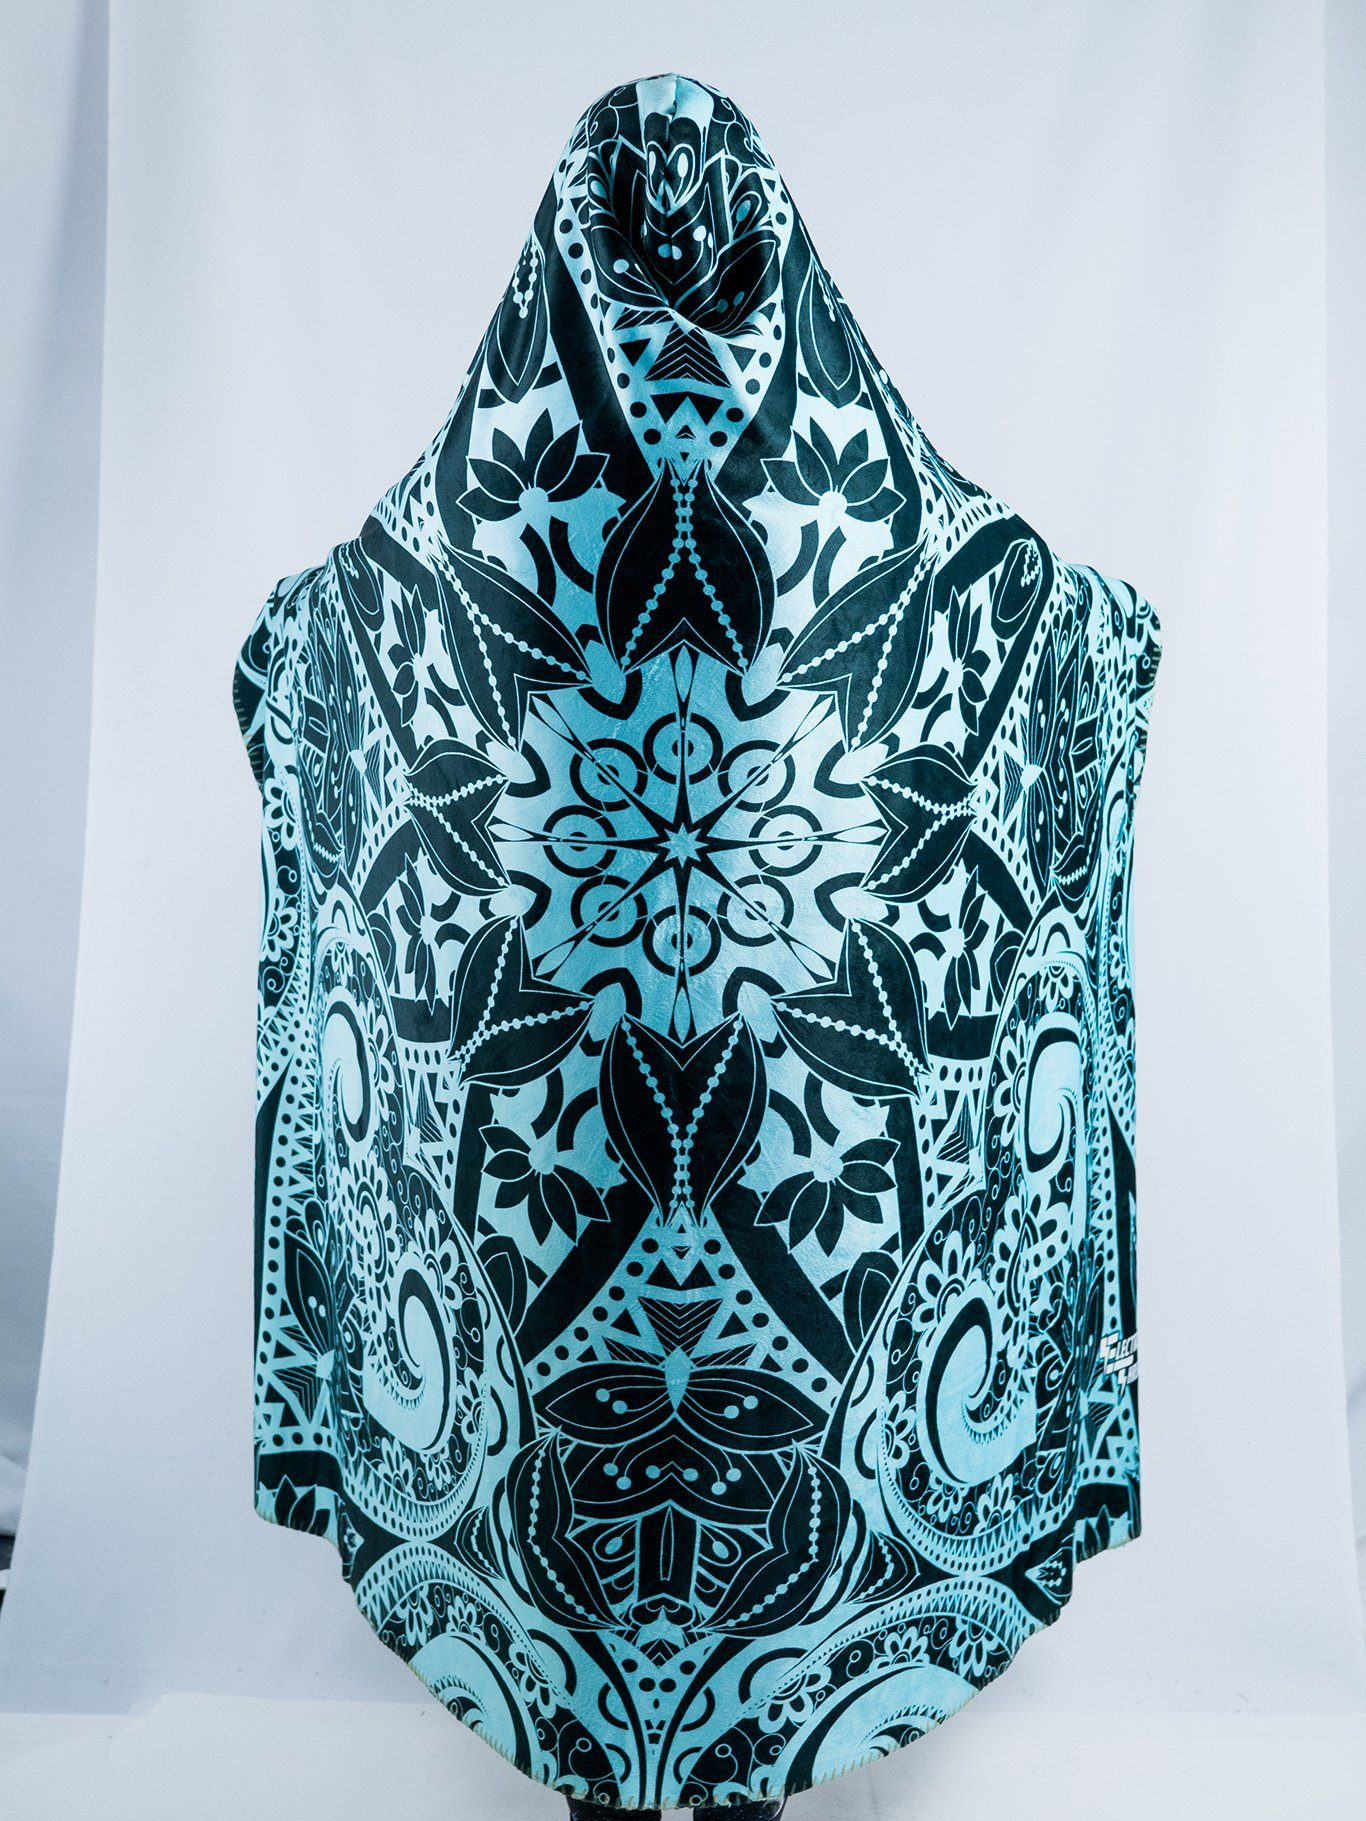 Teal Mandala Hooded Blanket Hooded Blanket Electro Threads